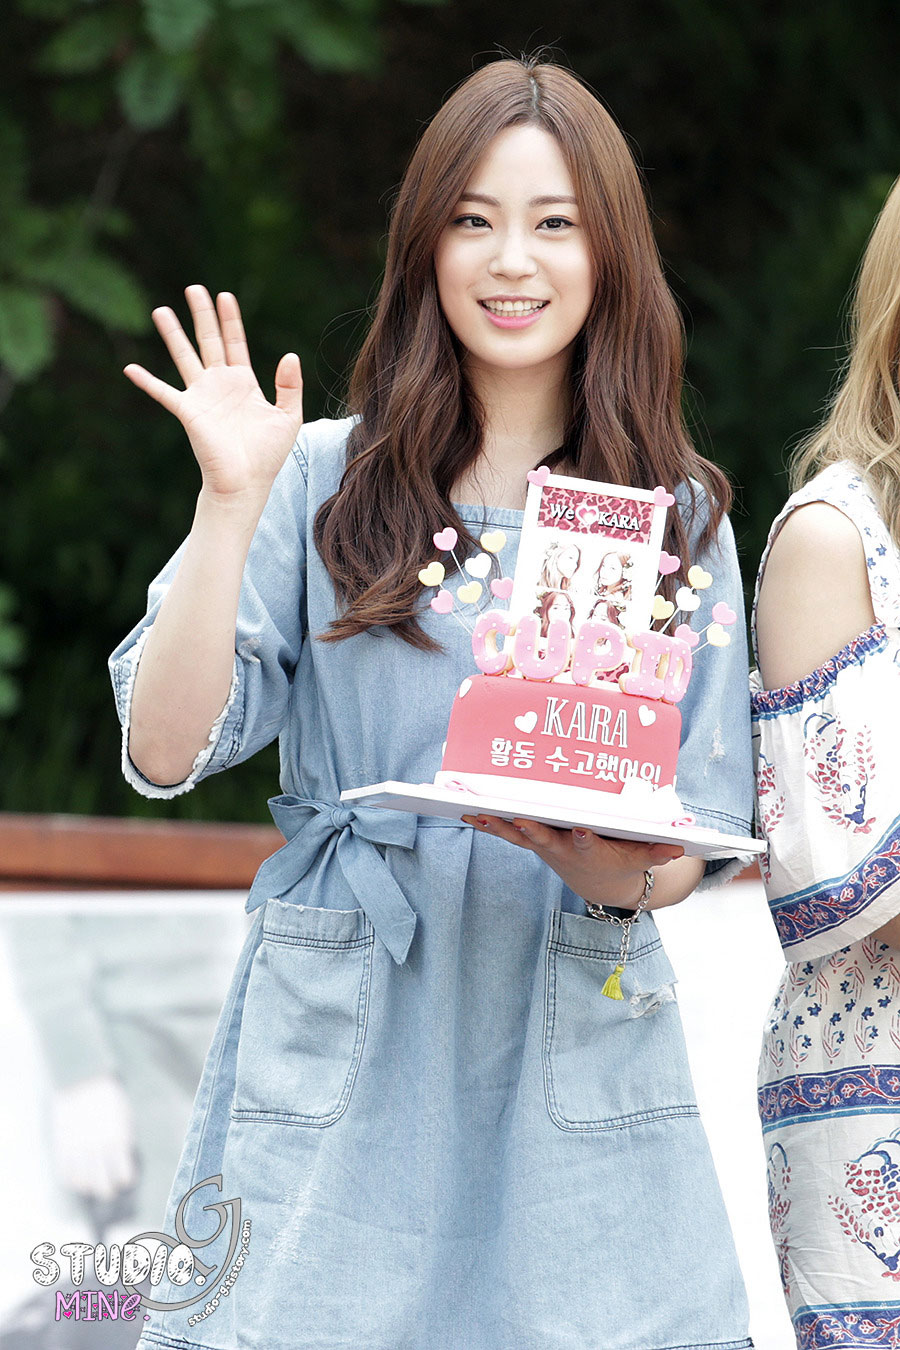 KARA Youngji Cupid mini fan meeting event